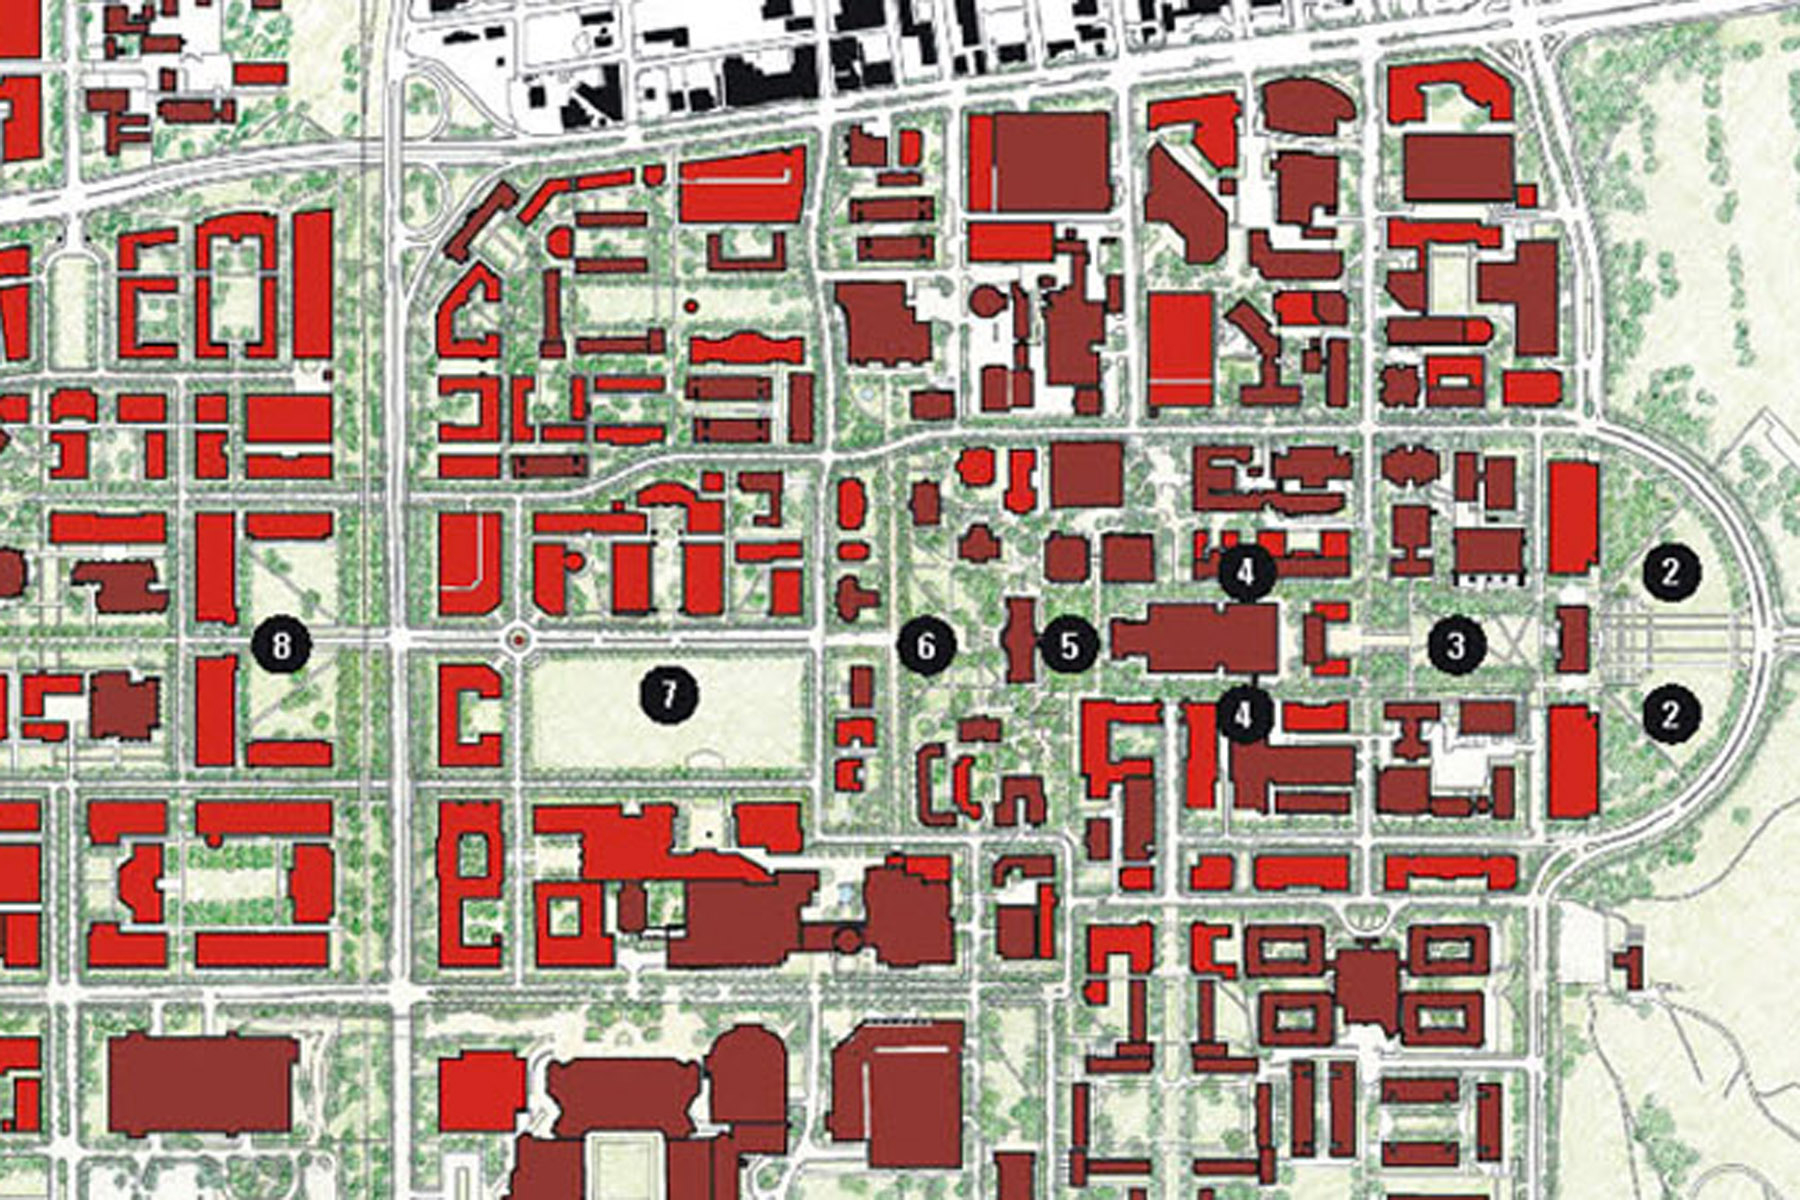 Master Plans - Office Of Facilities Coordination - Texas A&m Housing Map